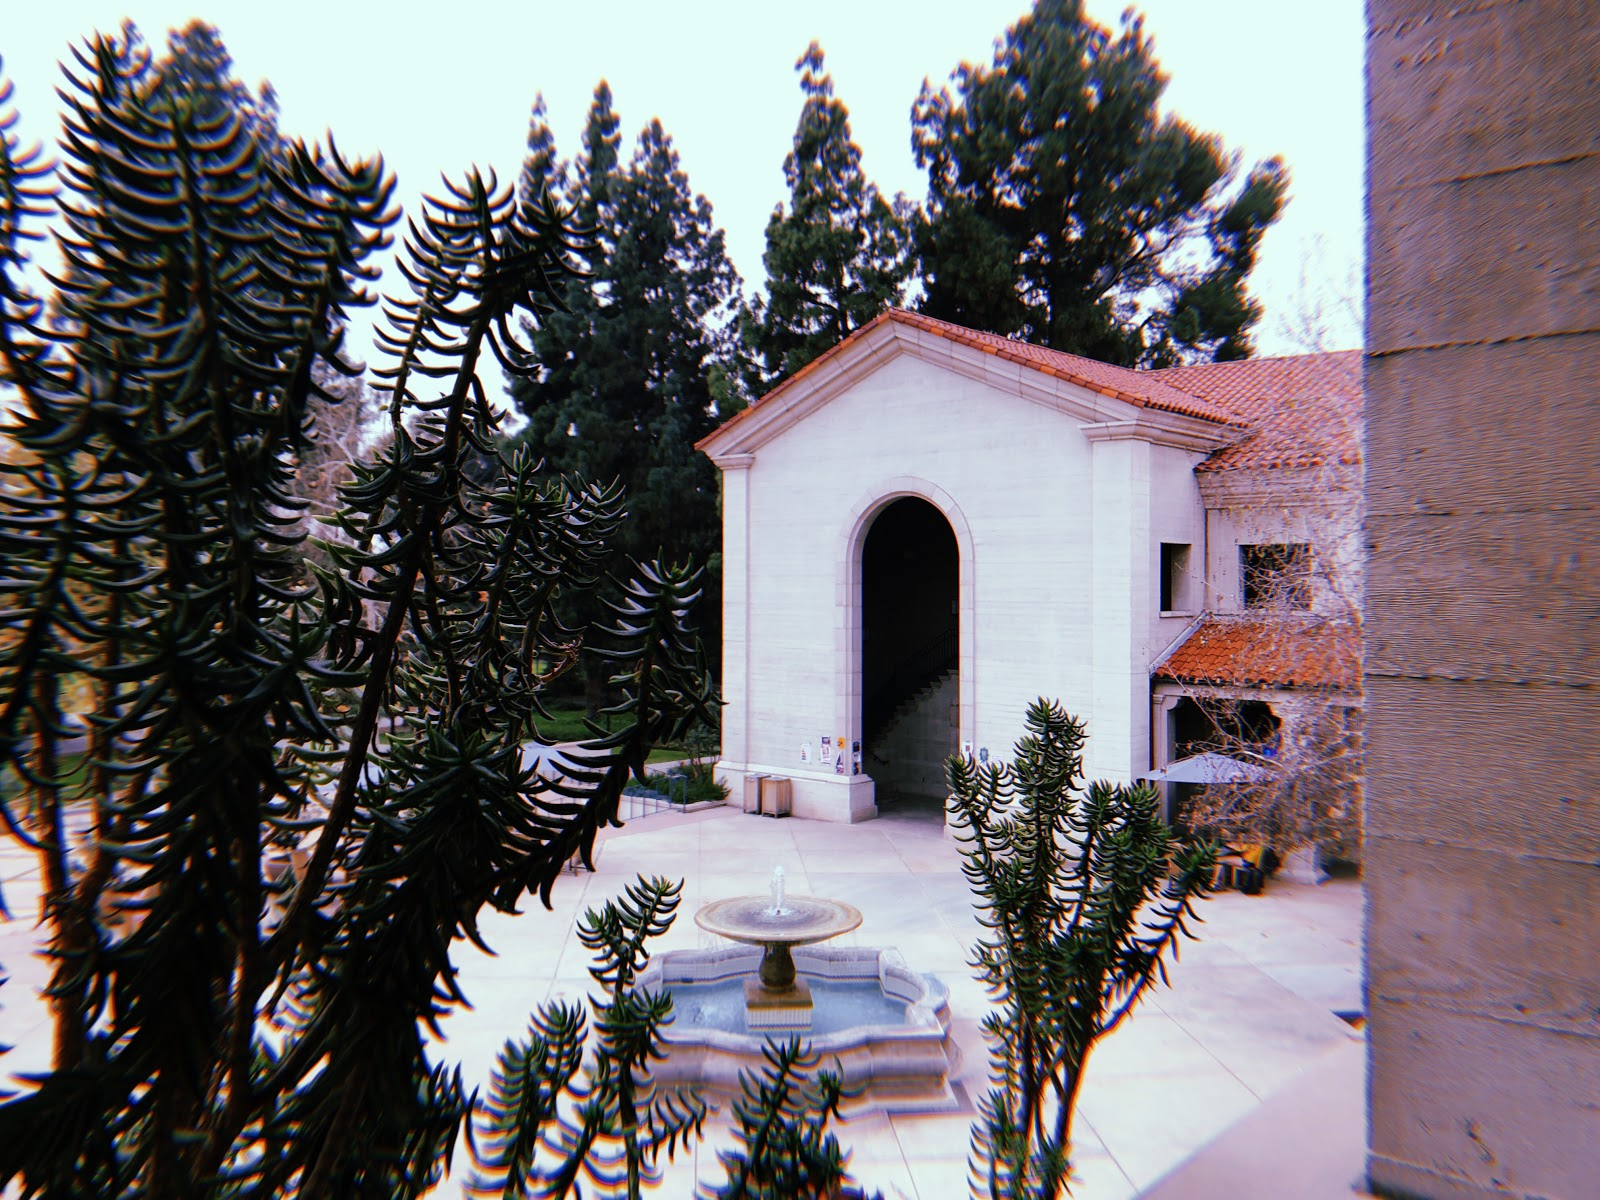 A view of the Student Campus Center at Pomona College. Photograph courtesy of Ananya Saluja